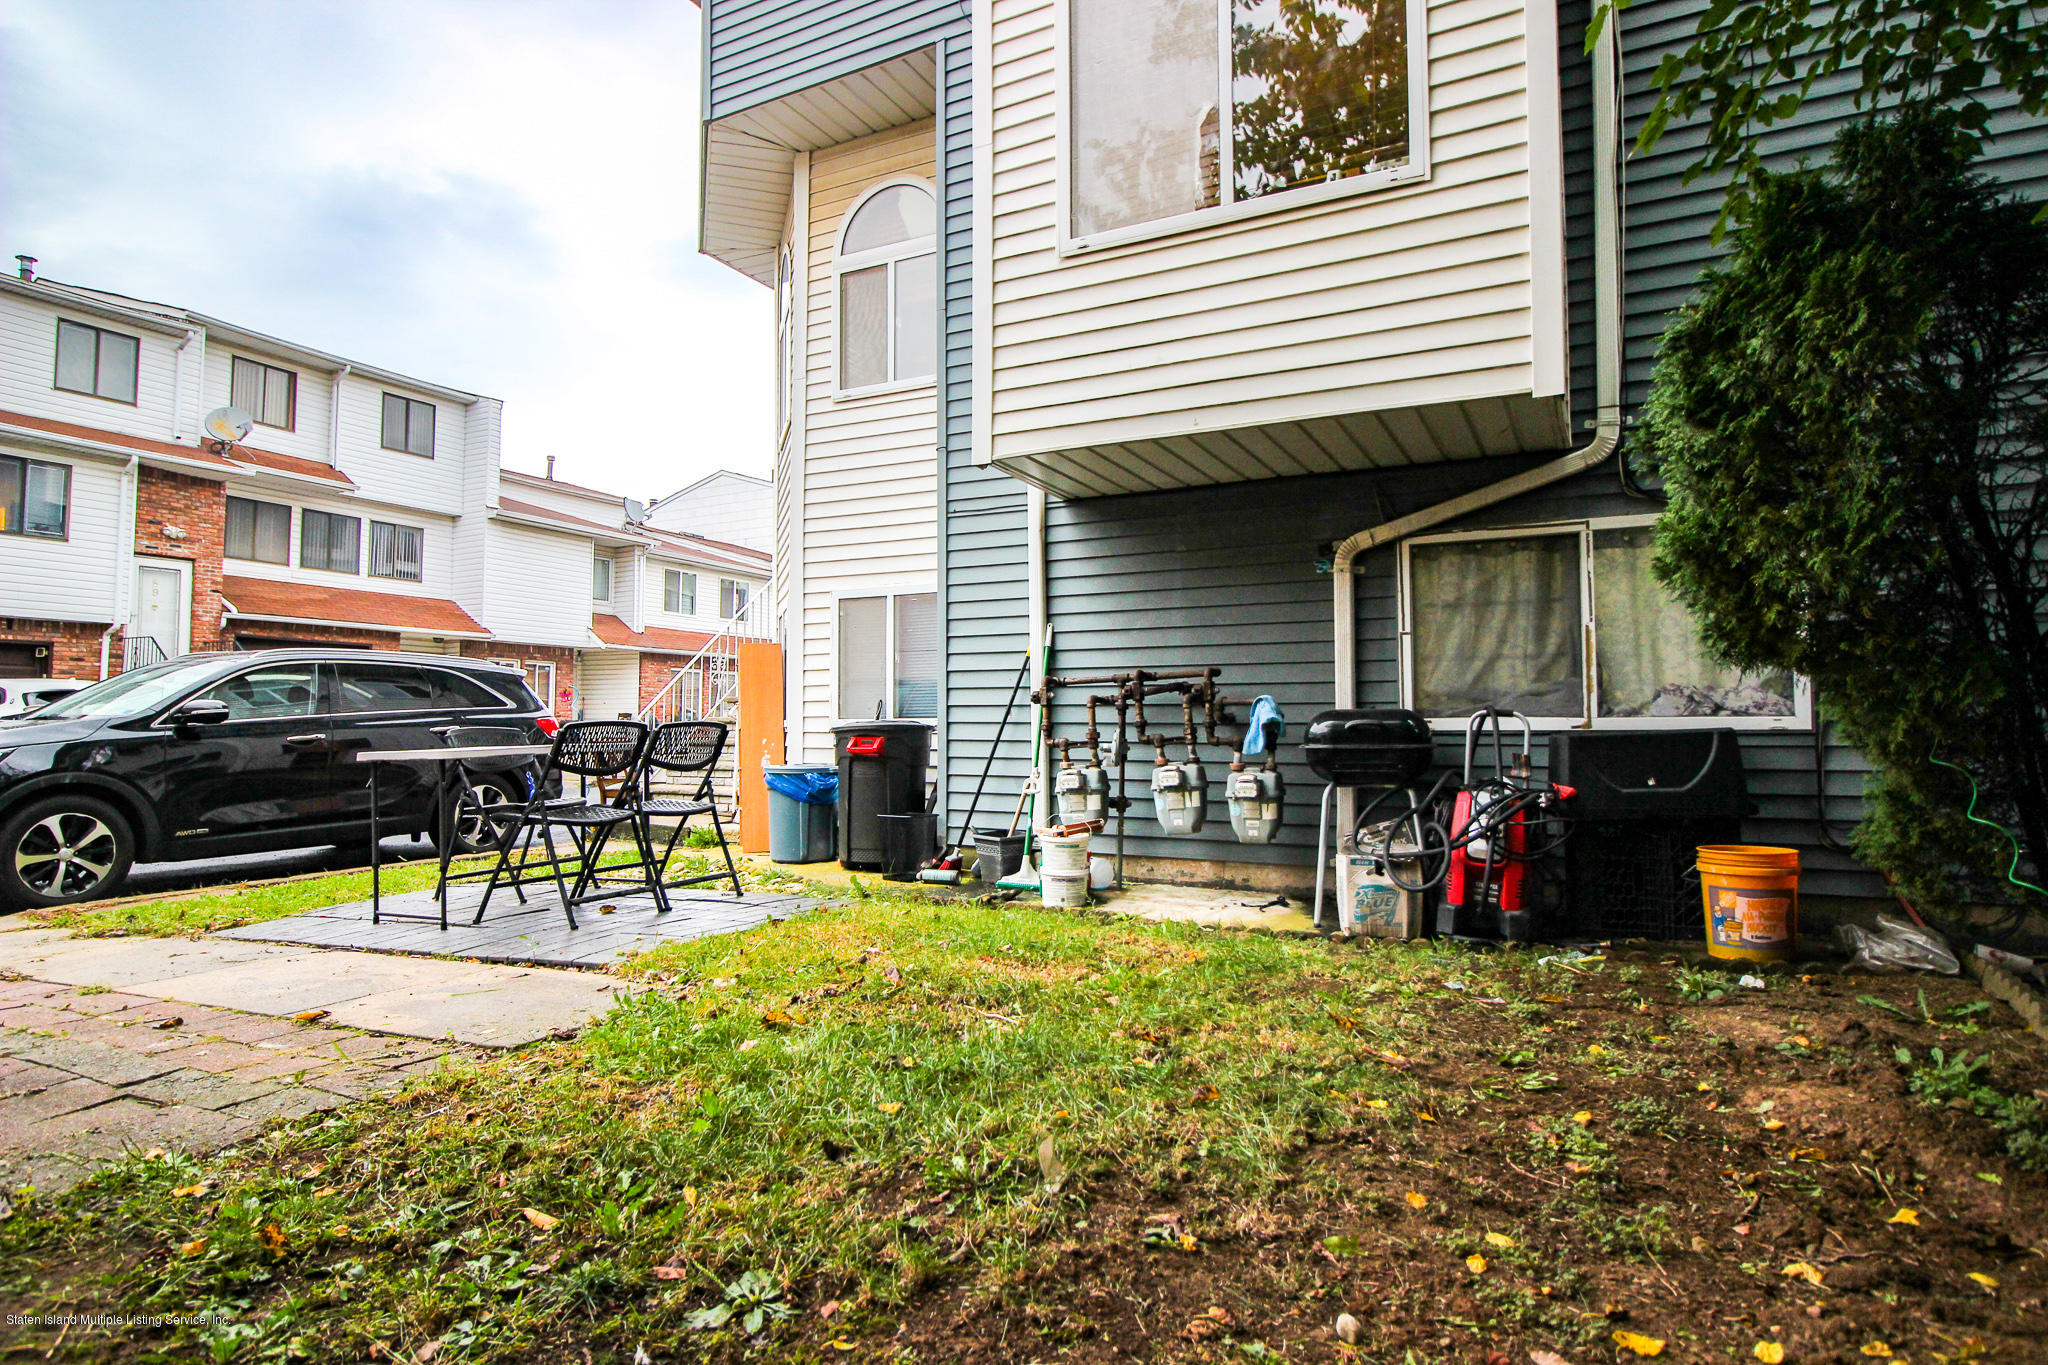 Single Family - Attached 86 Country Drive S Drive  Staten Island, NY 10314, MLS-1141008-37